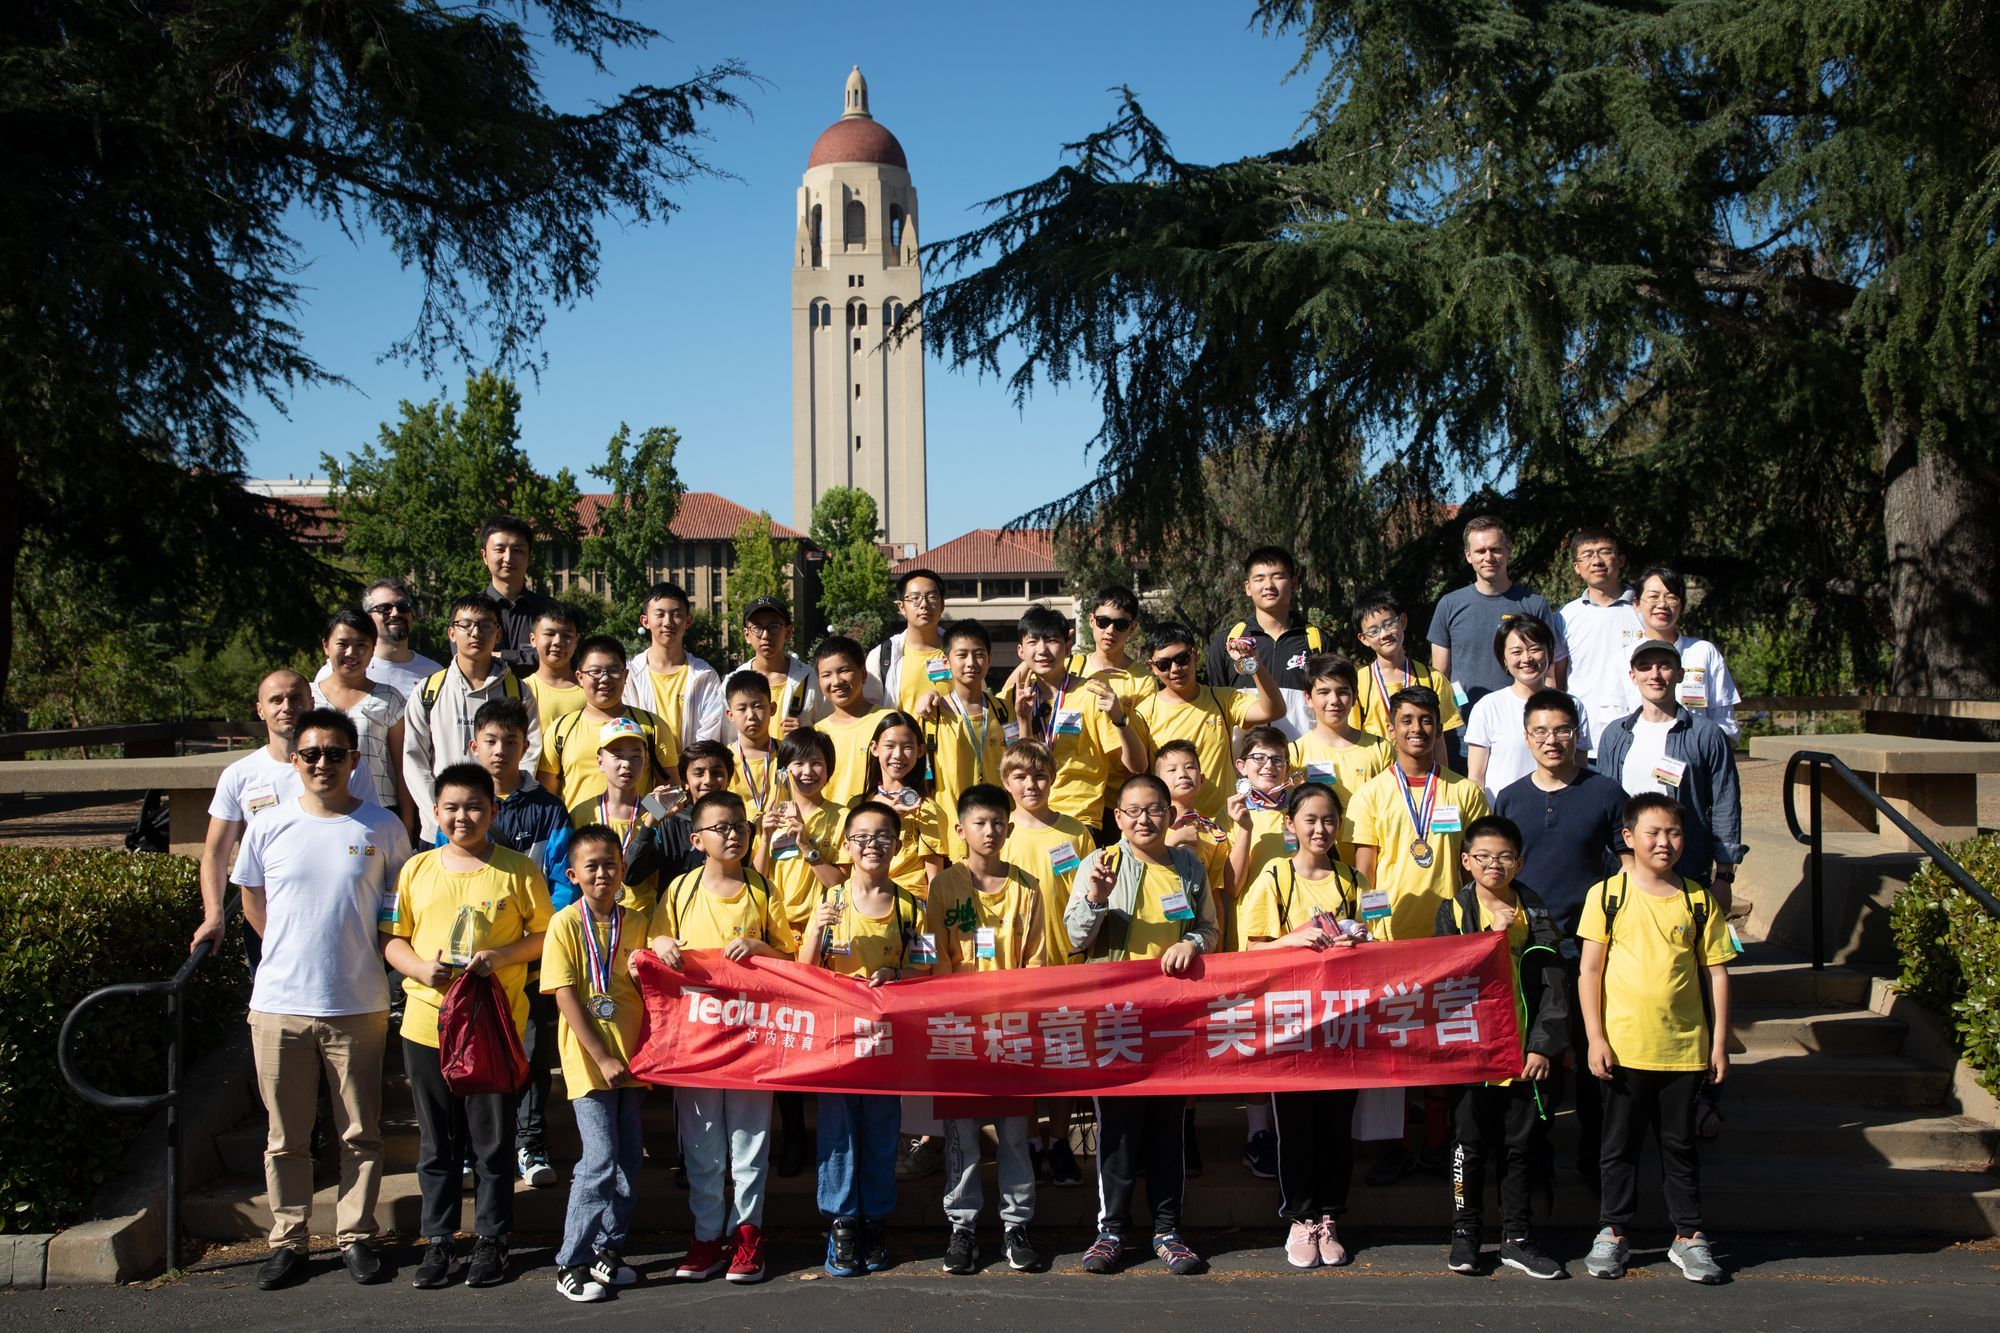 CodeCombat and Tarena Host International Coding Tournament at Stanford University